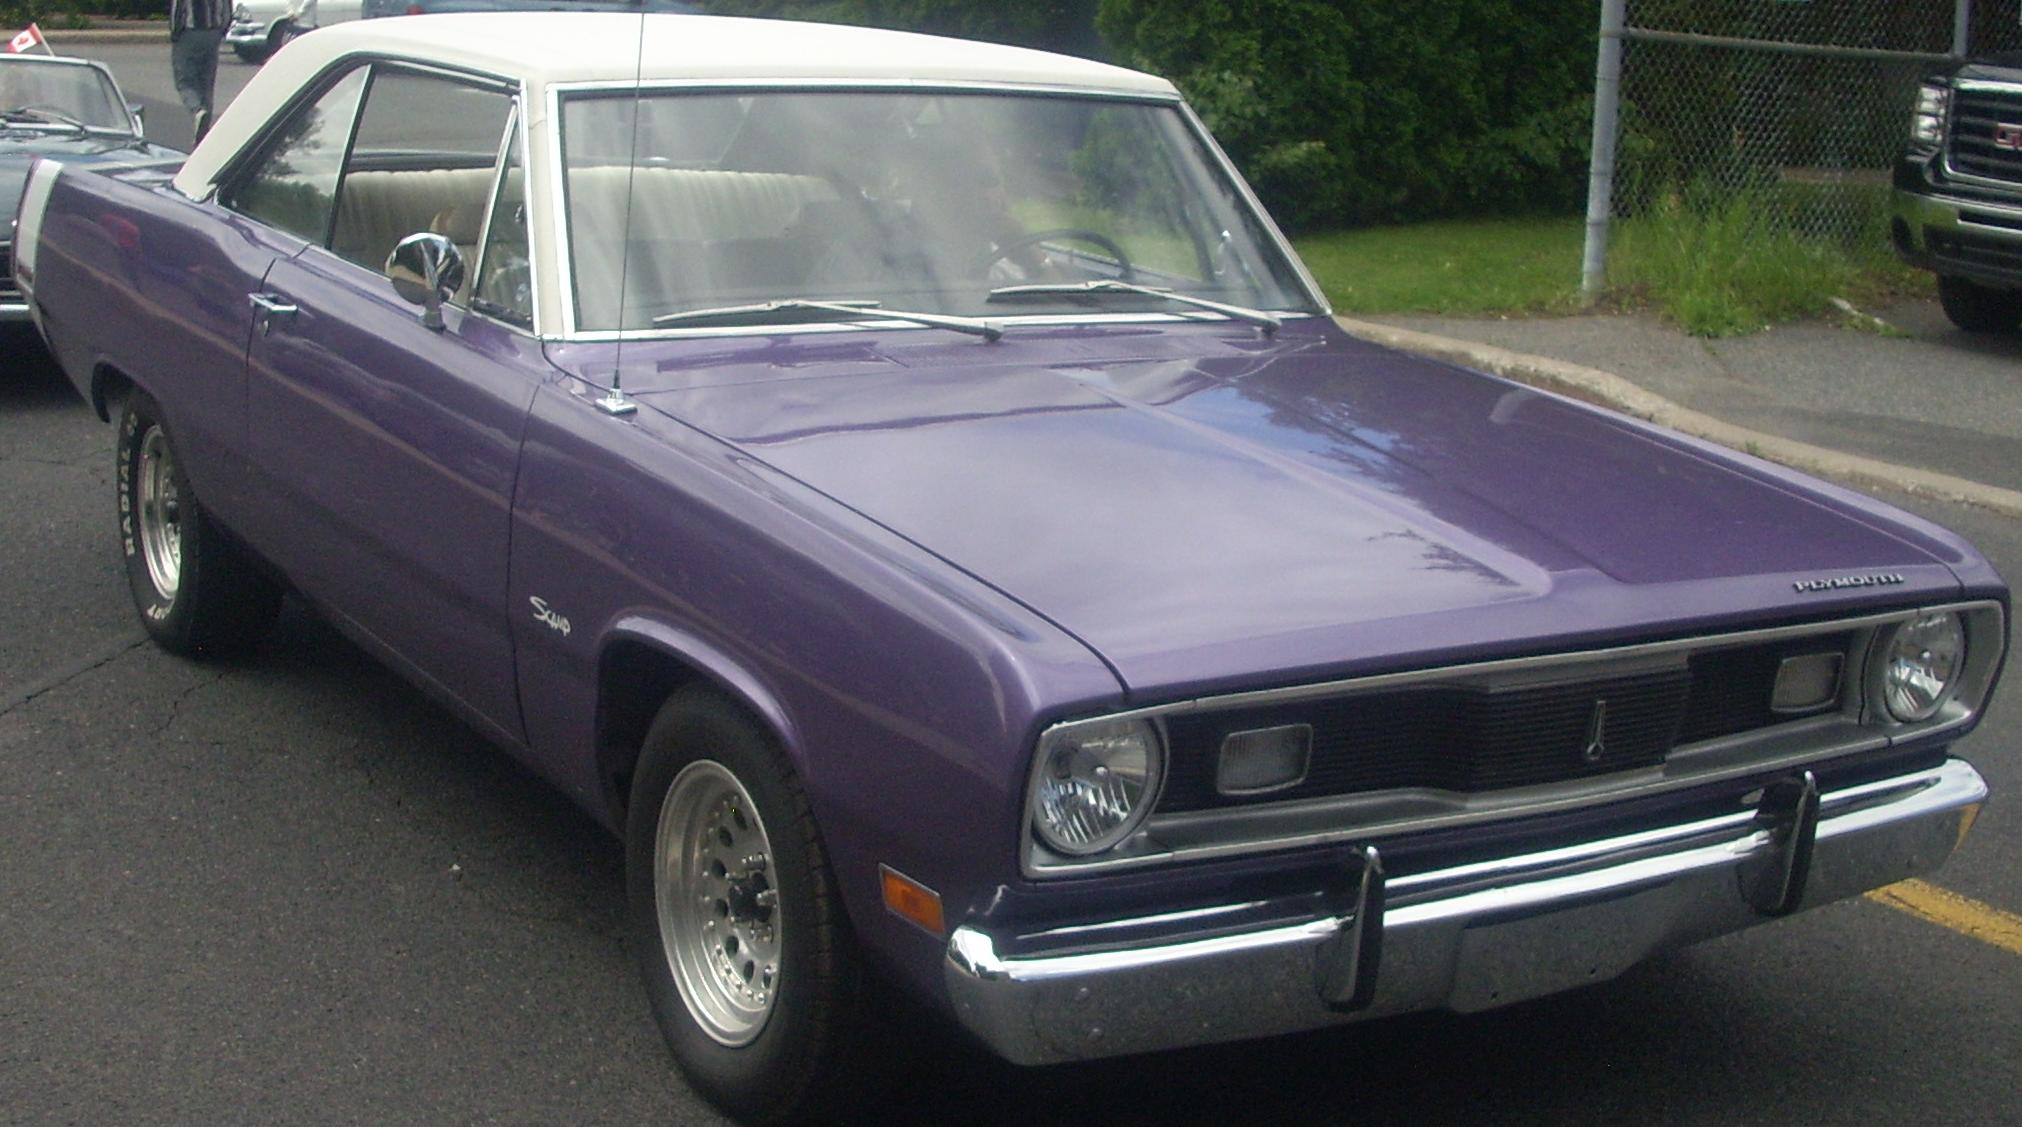 file 71 plymouth valiant scamp rassemblement saint bruno de rh commons wikimedia org 1974 plymouth valiant scamp plymouth valiant scamp 340